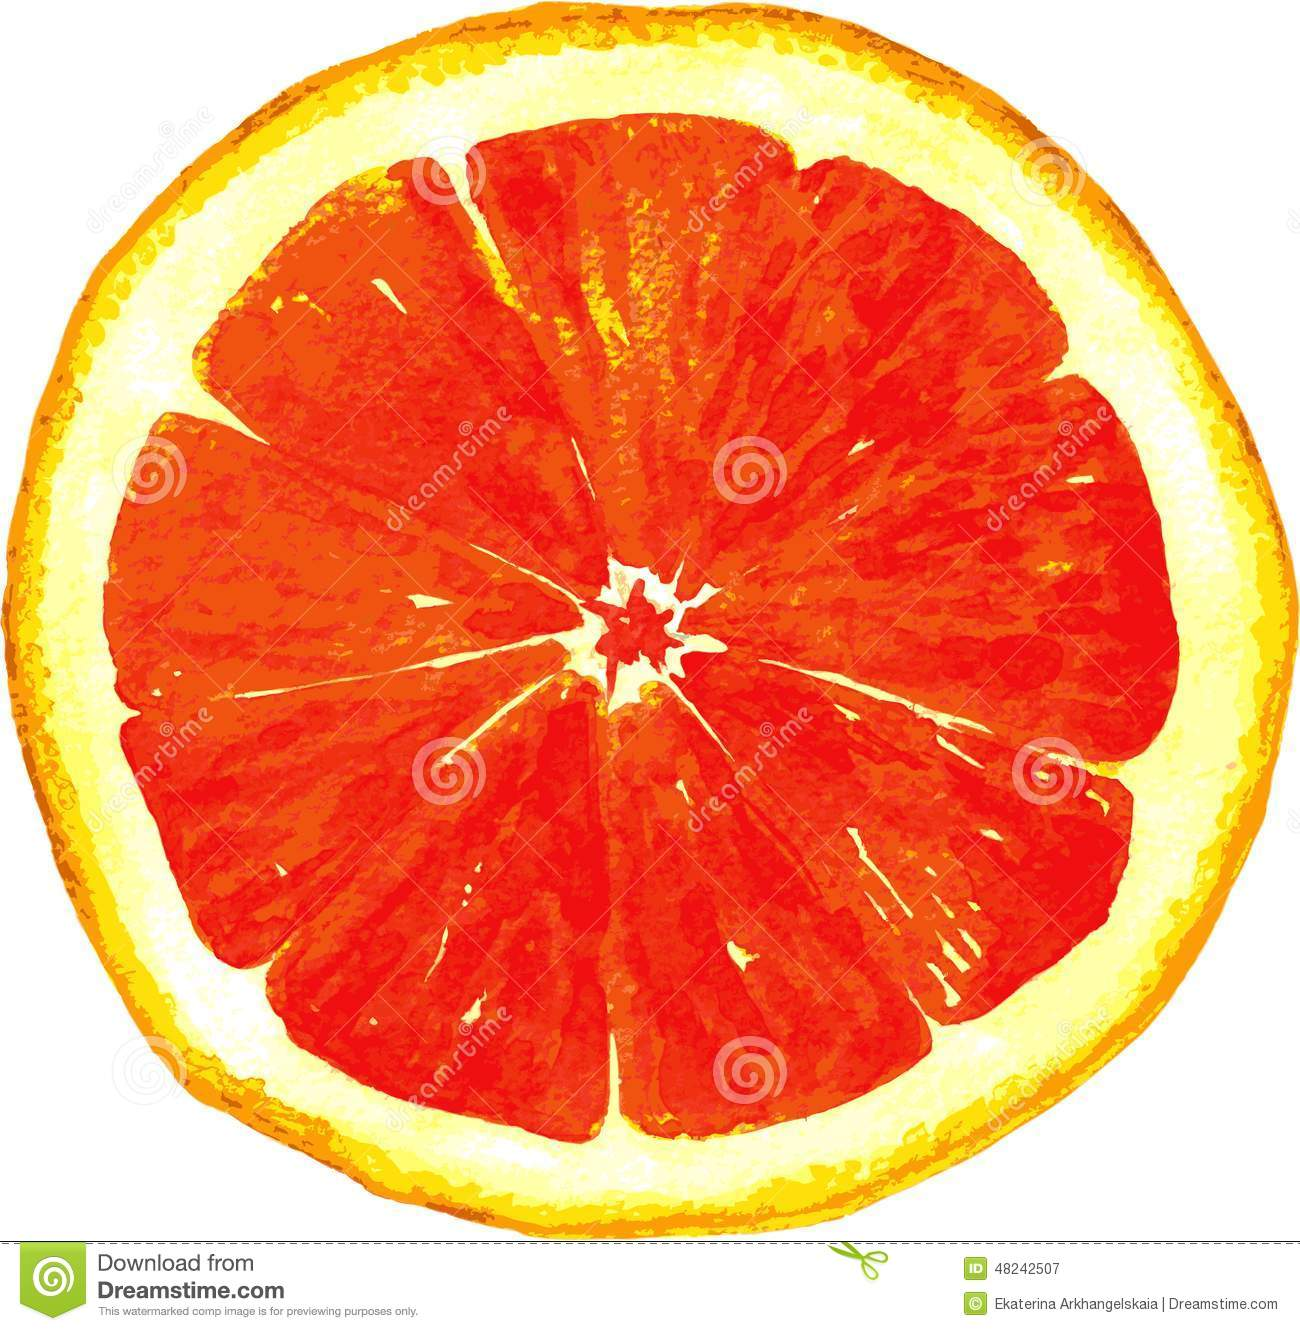 Slice Of Grapefruit Drawing By Watercolor Stock Vector - Image: 48242507